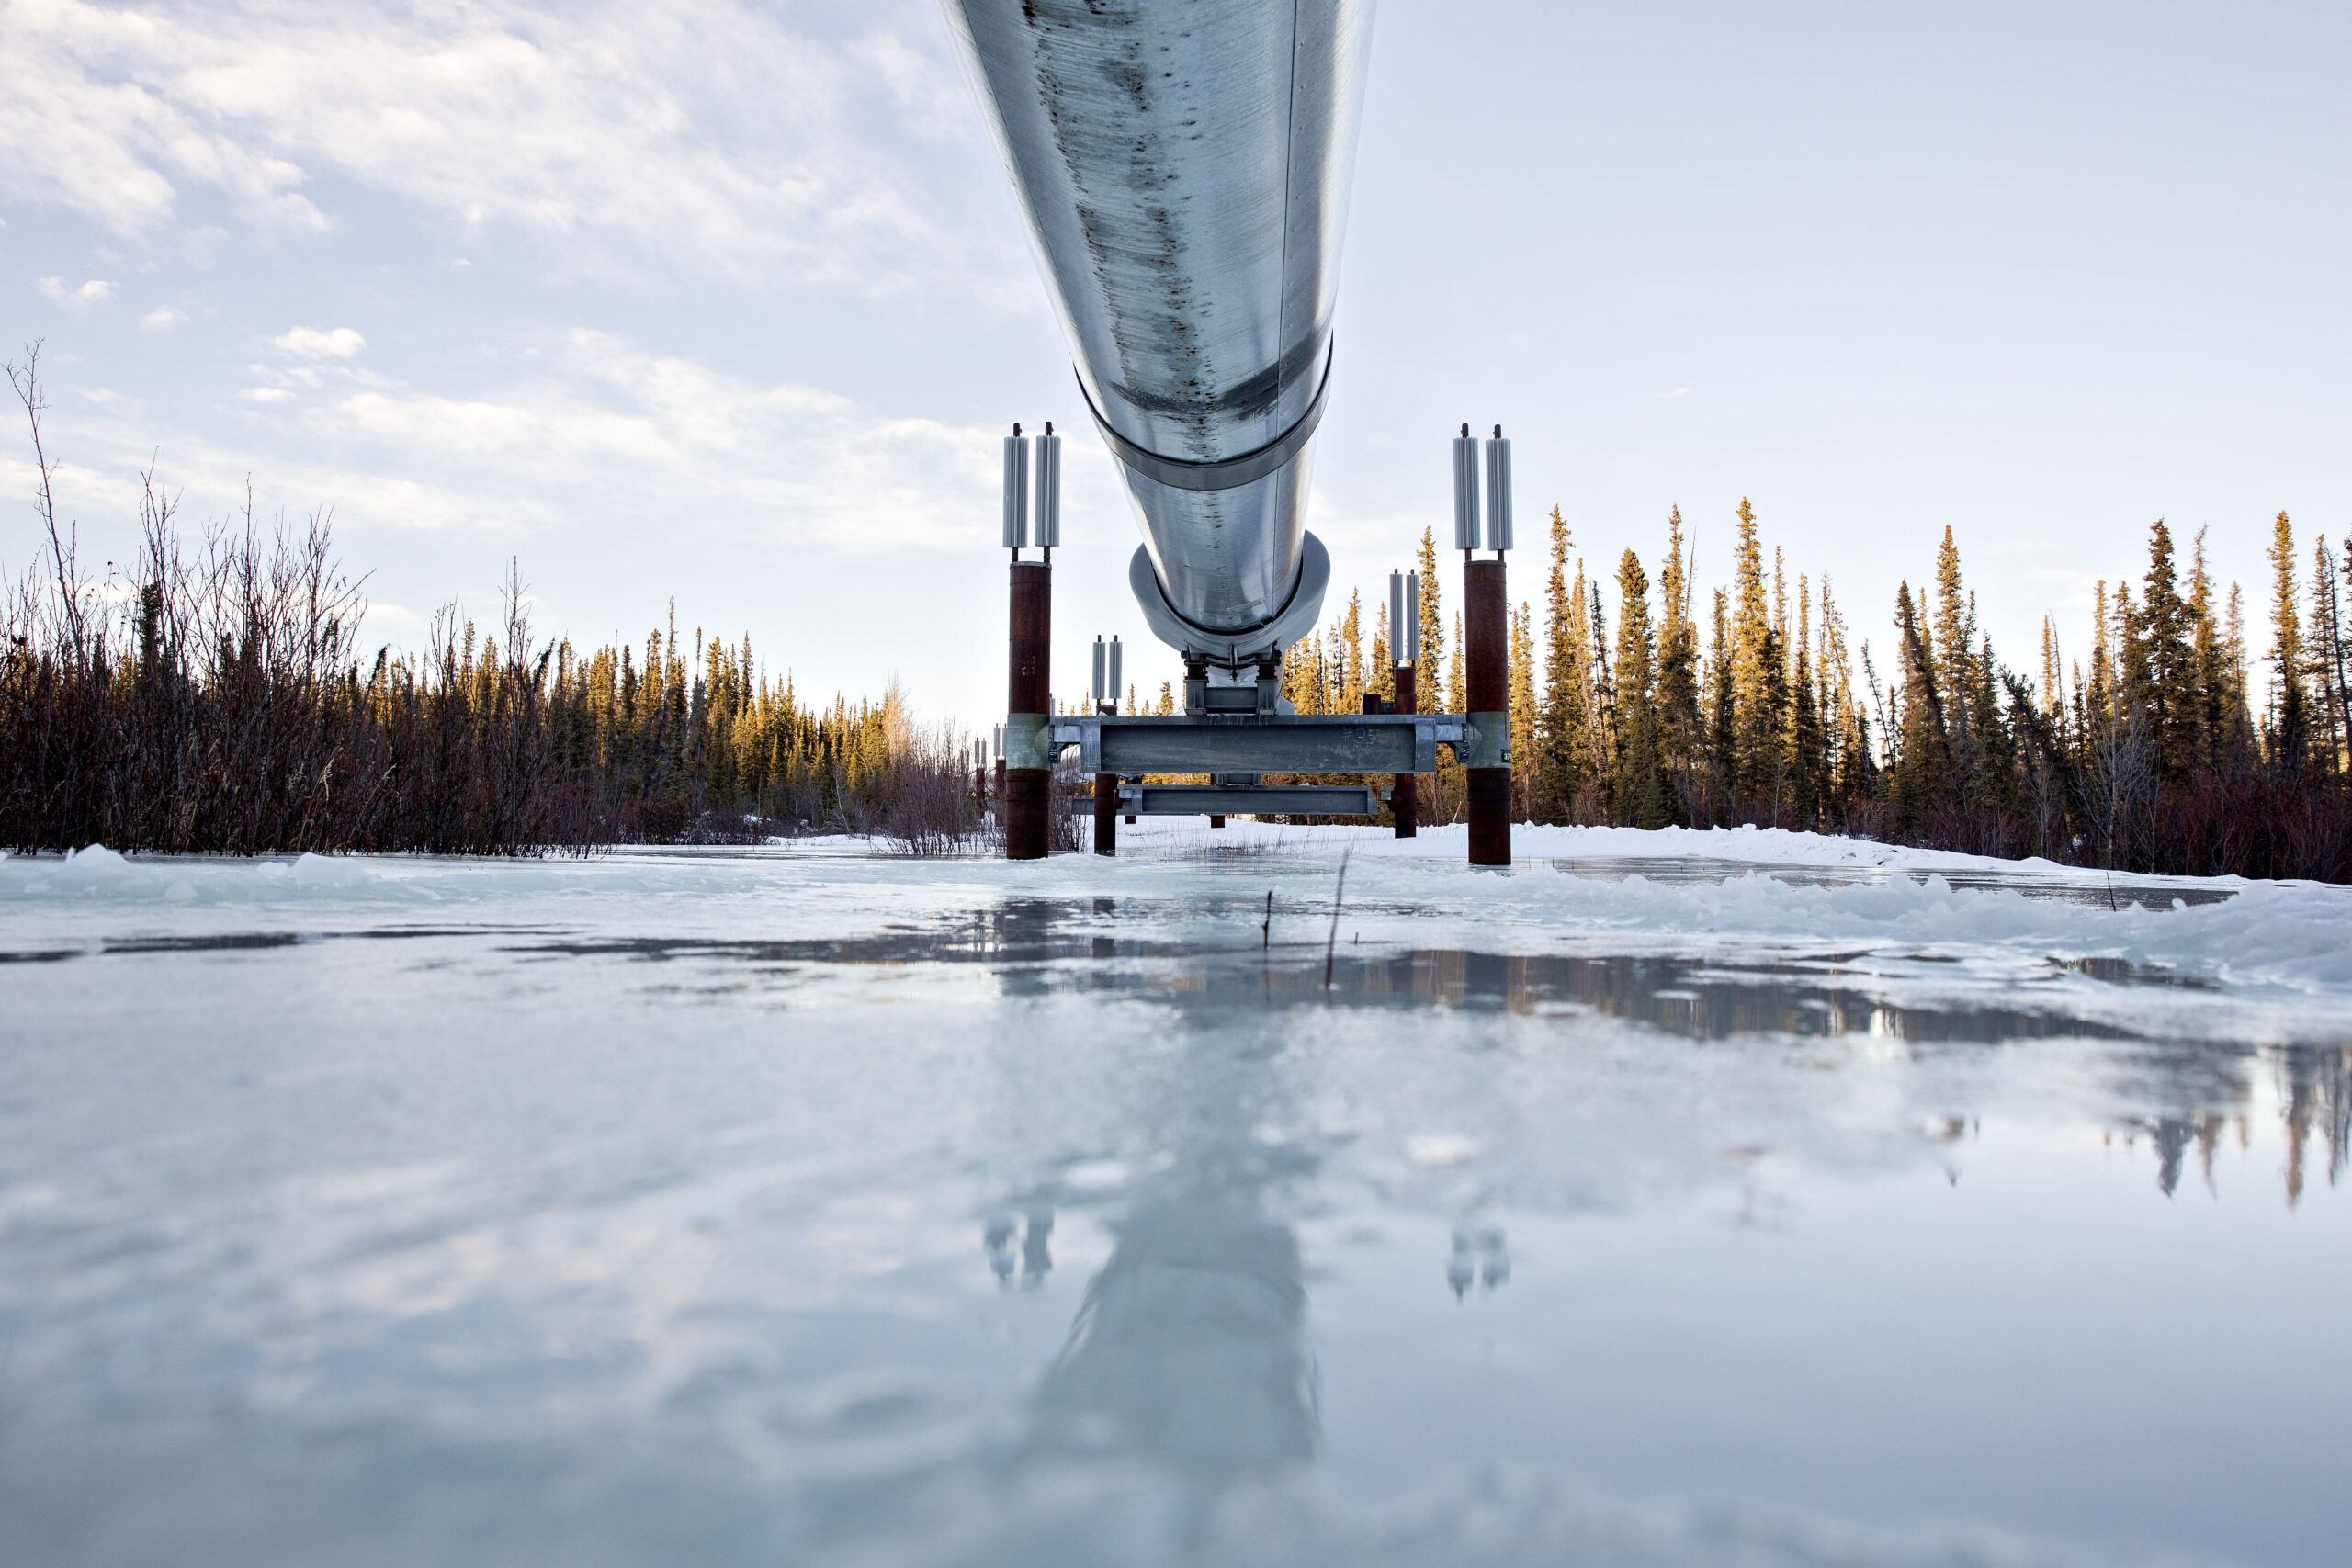 The Trans Alaska Pipeline System stands near Copperville, Alaska, on Tuesday, Feb. 14, 2017. Credit: Daniel Acker/Bloomberg via Getty Images